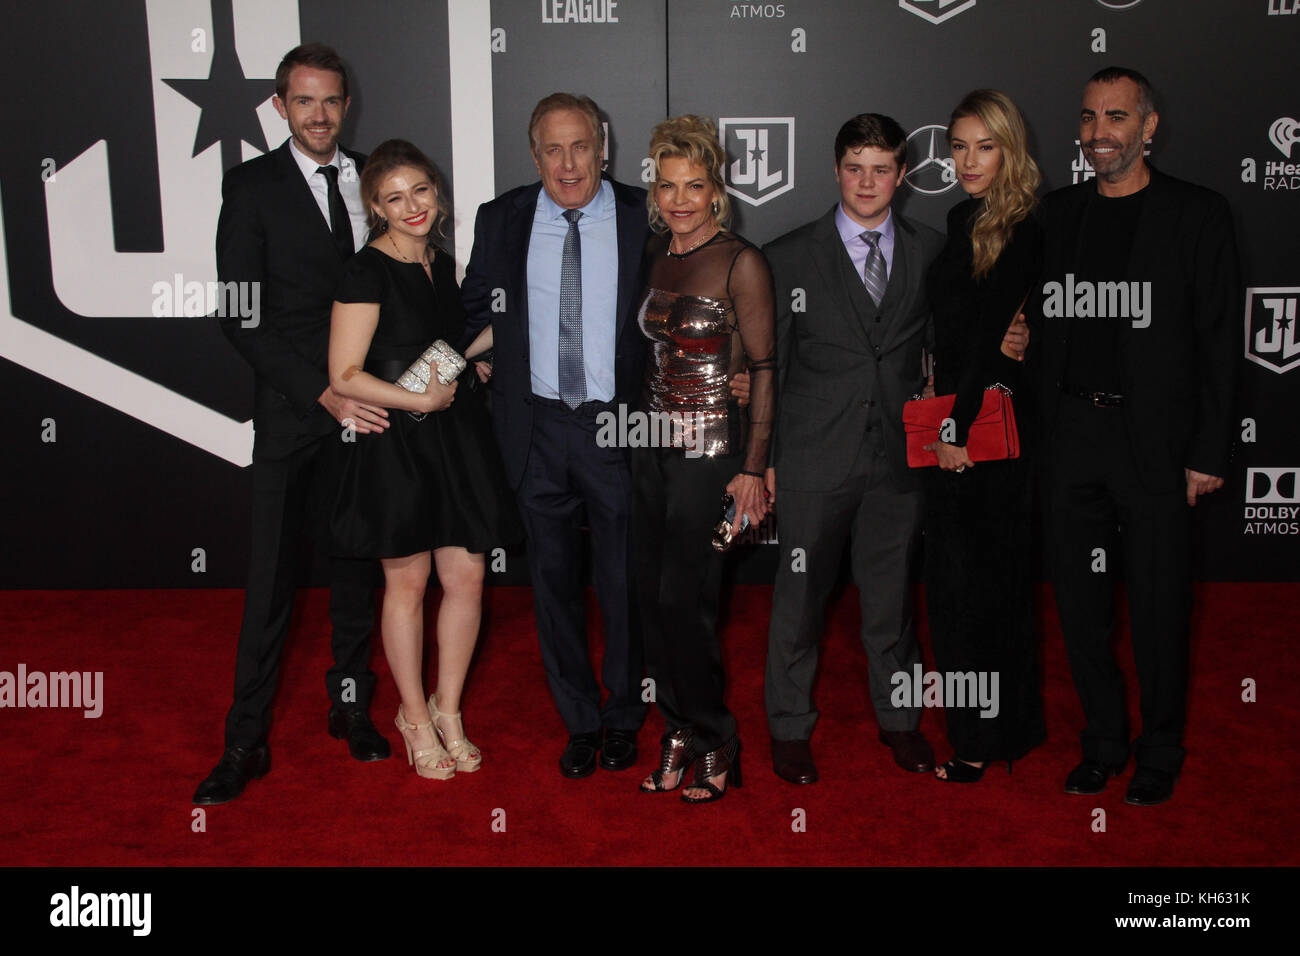 Chuck Roven  11/13/2017 The World Premiere of 'Justice League' held at The Dolby Theater in Hollywood, CA - Stock Image